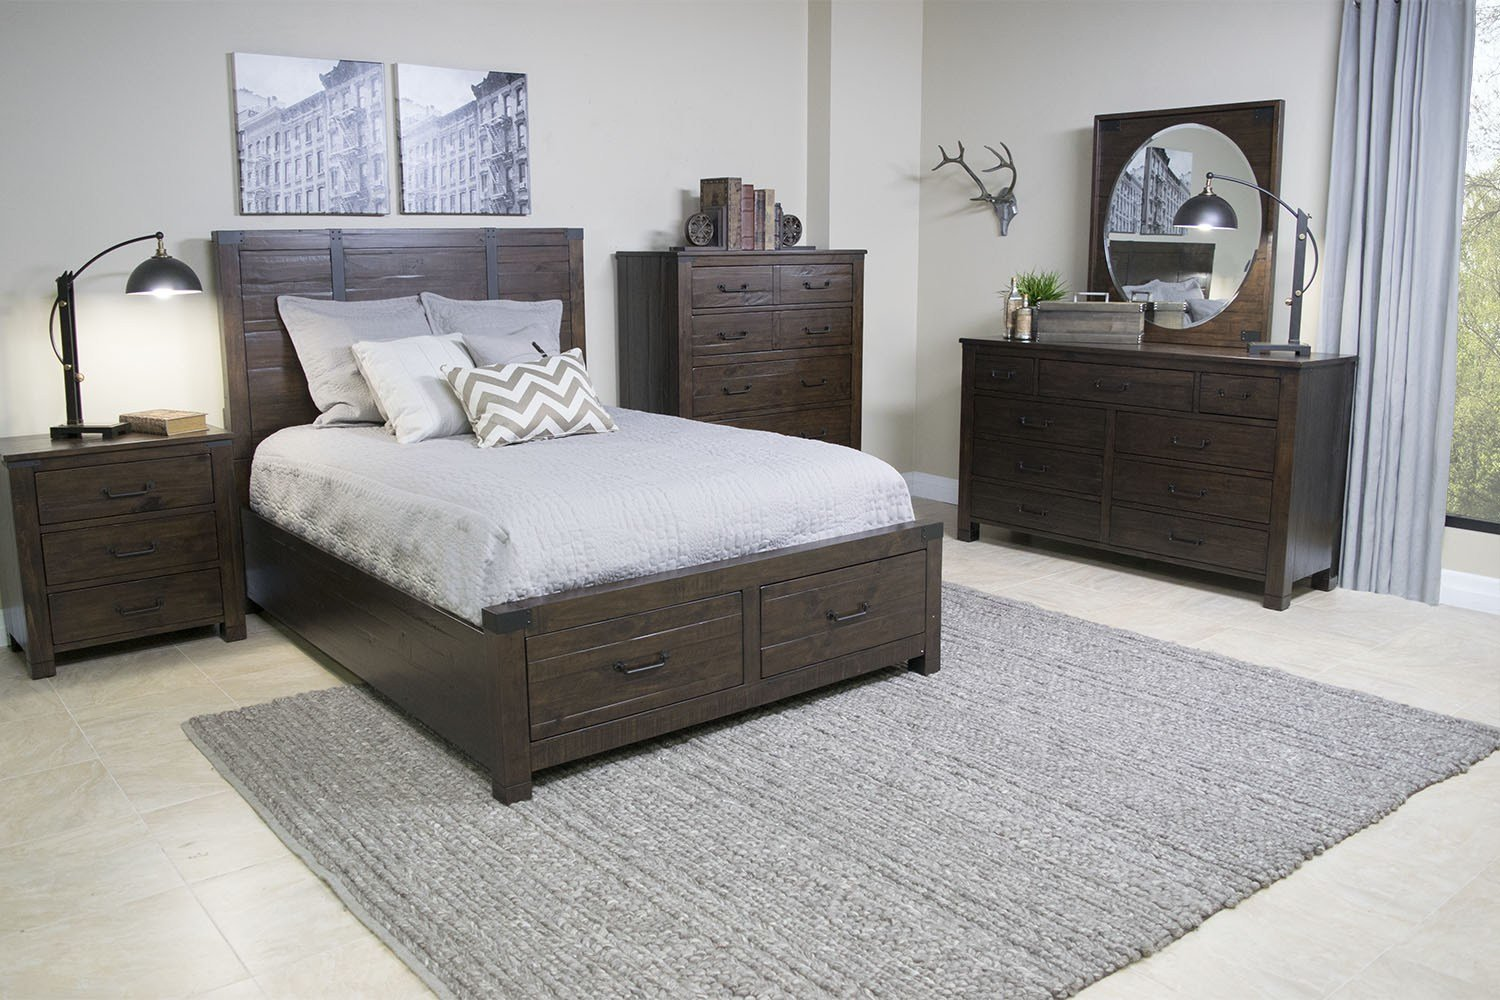 Best Blog Creating Your Very Own Bedroom Sanctuary Mor Furniture For Less With Pictures